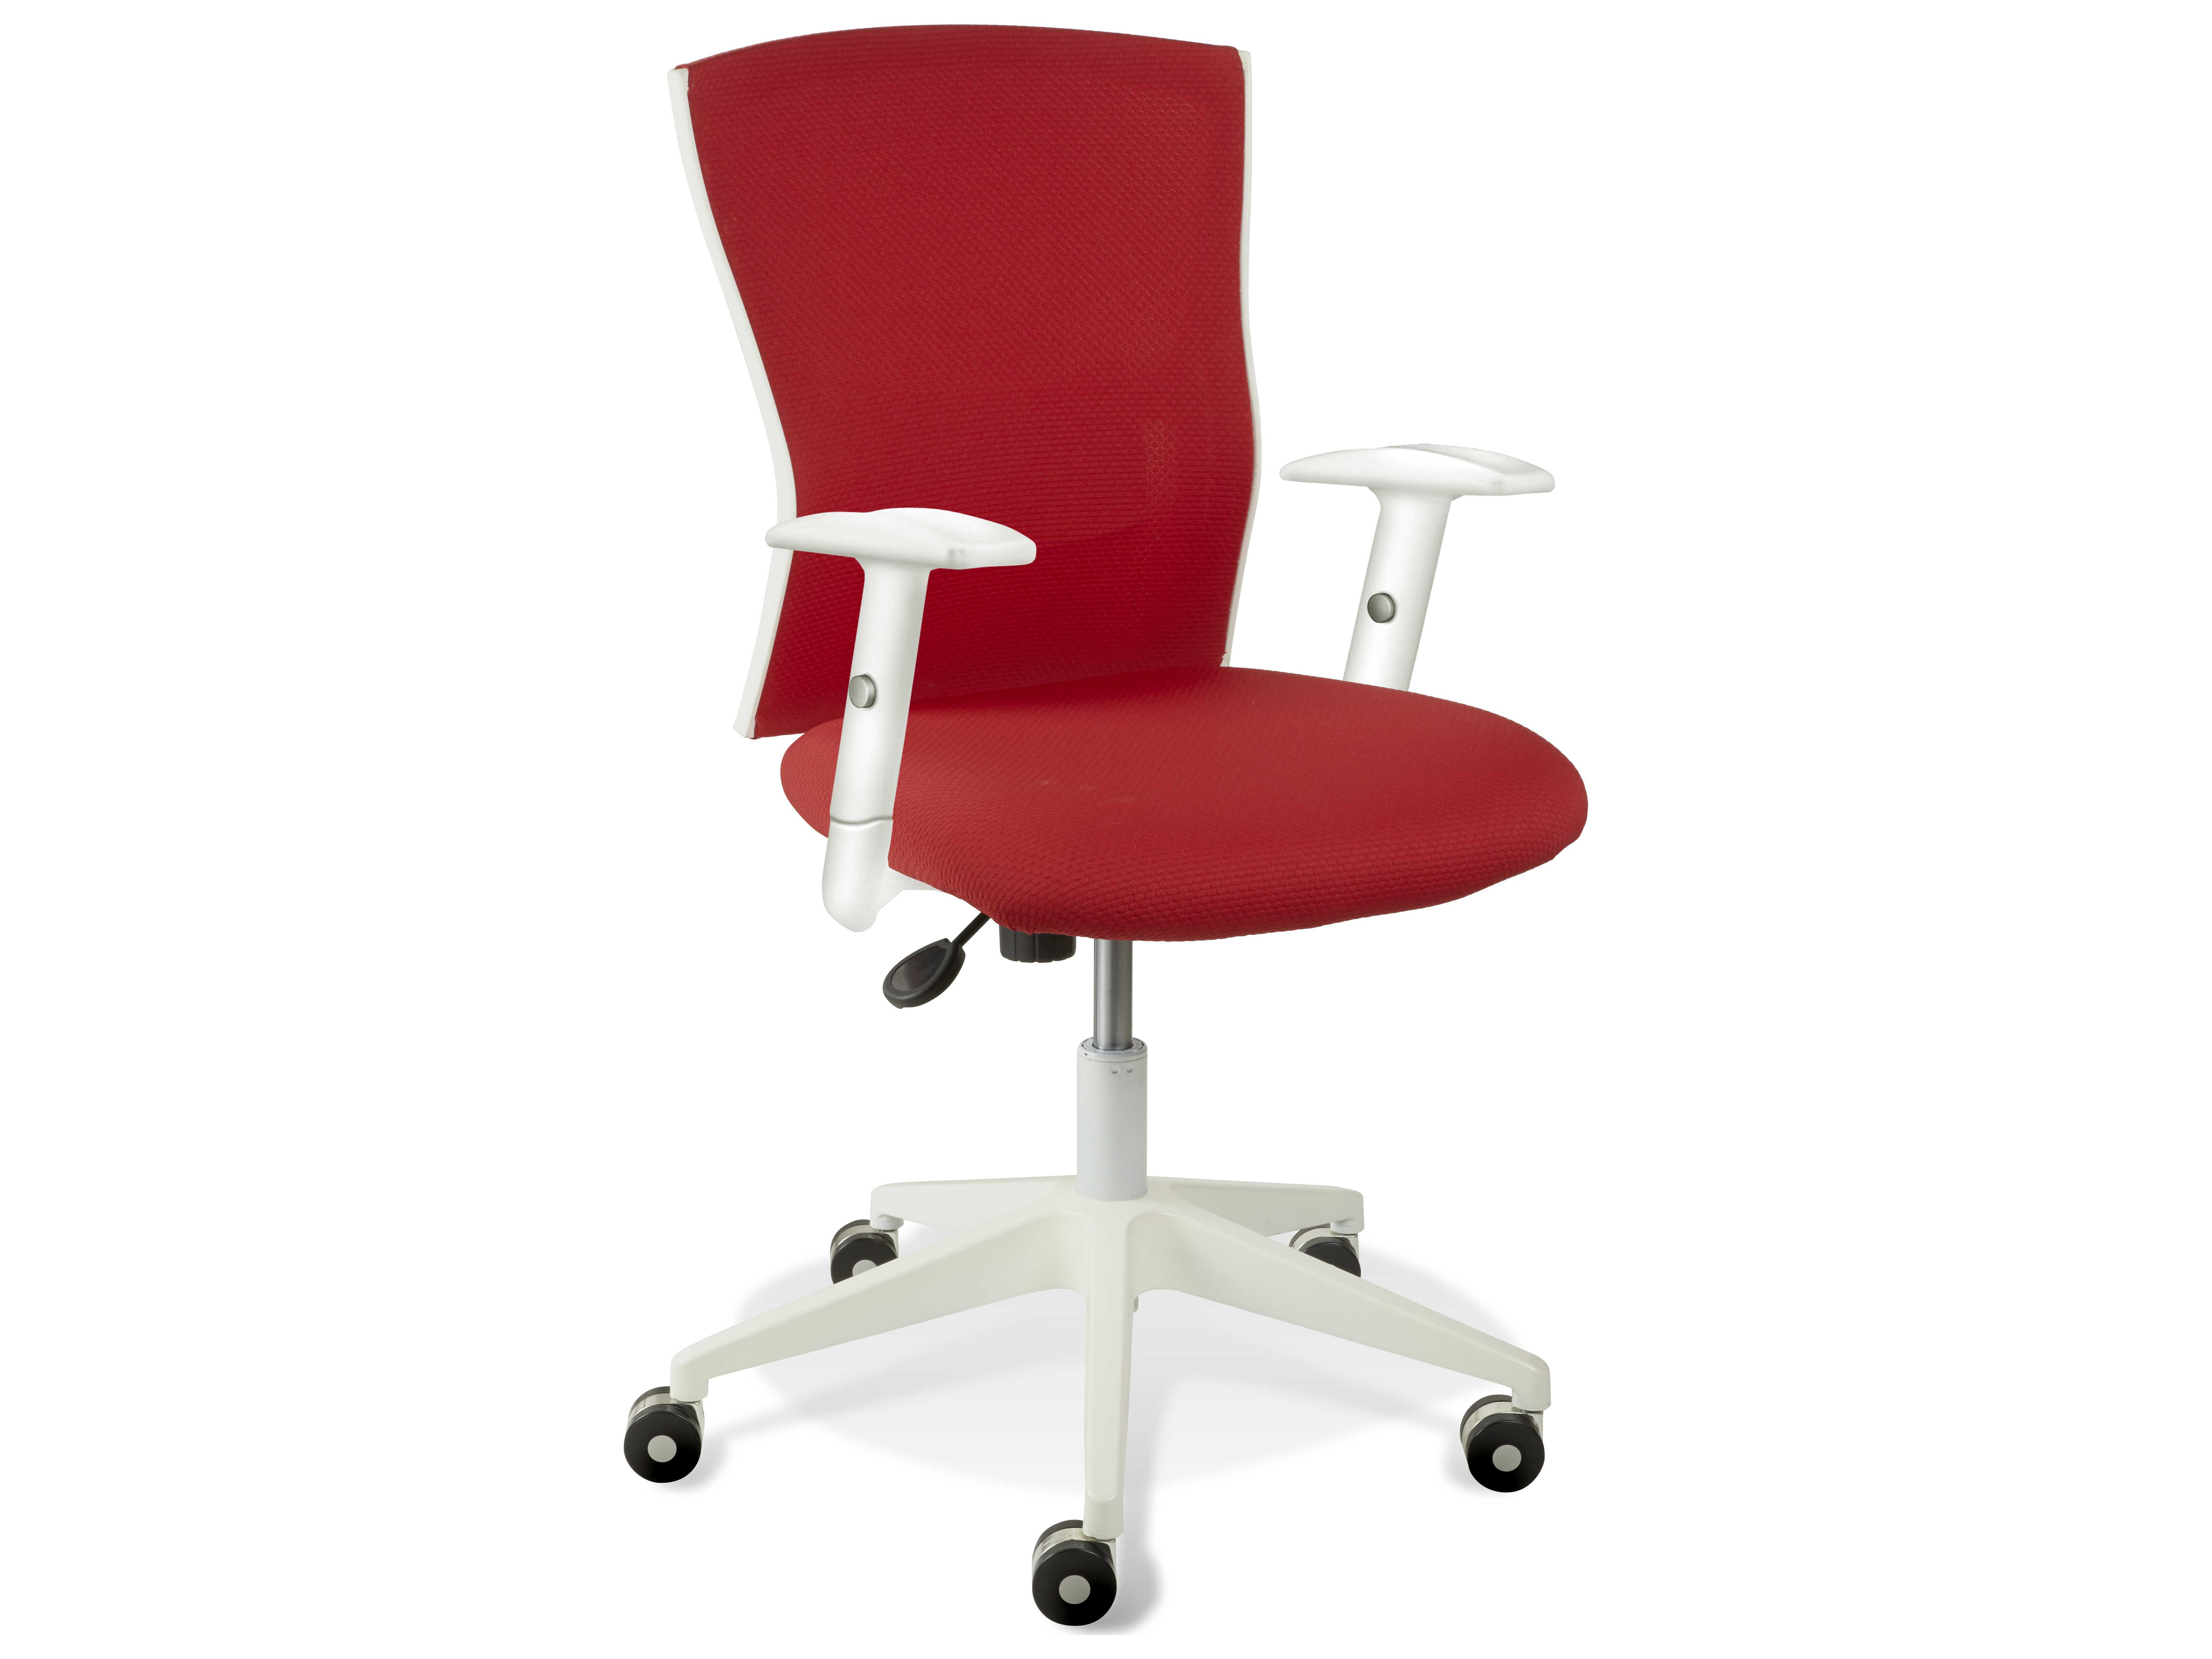 Unique Furniture Sanne Red Arm Office Chair JE53695364